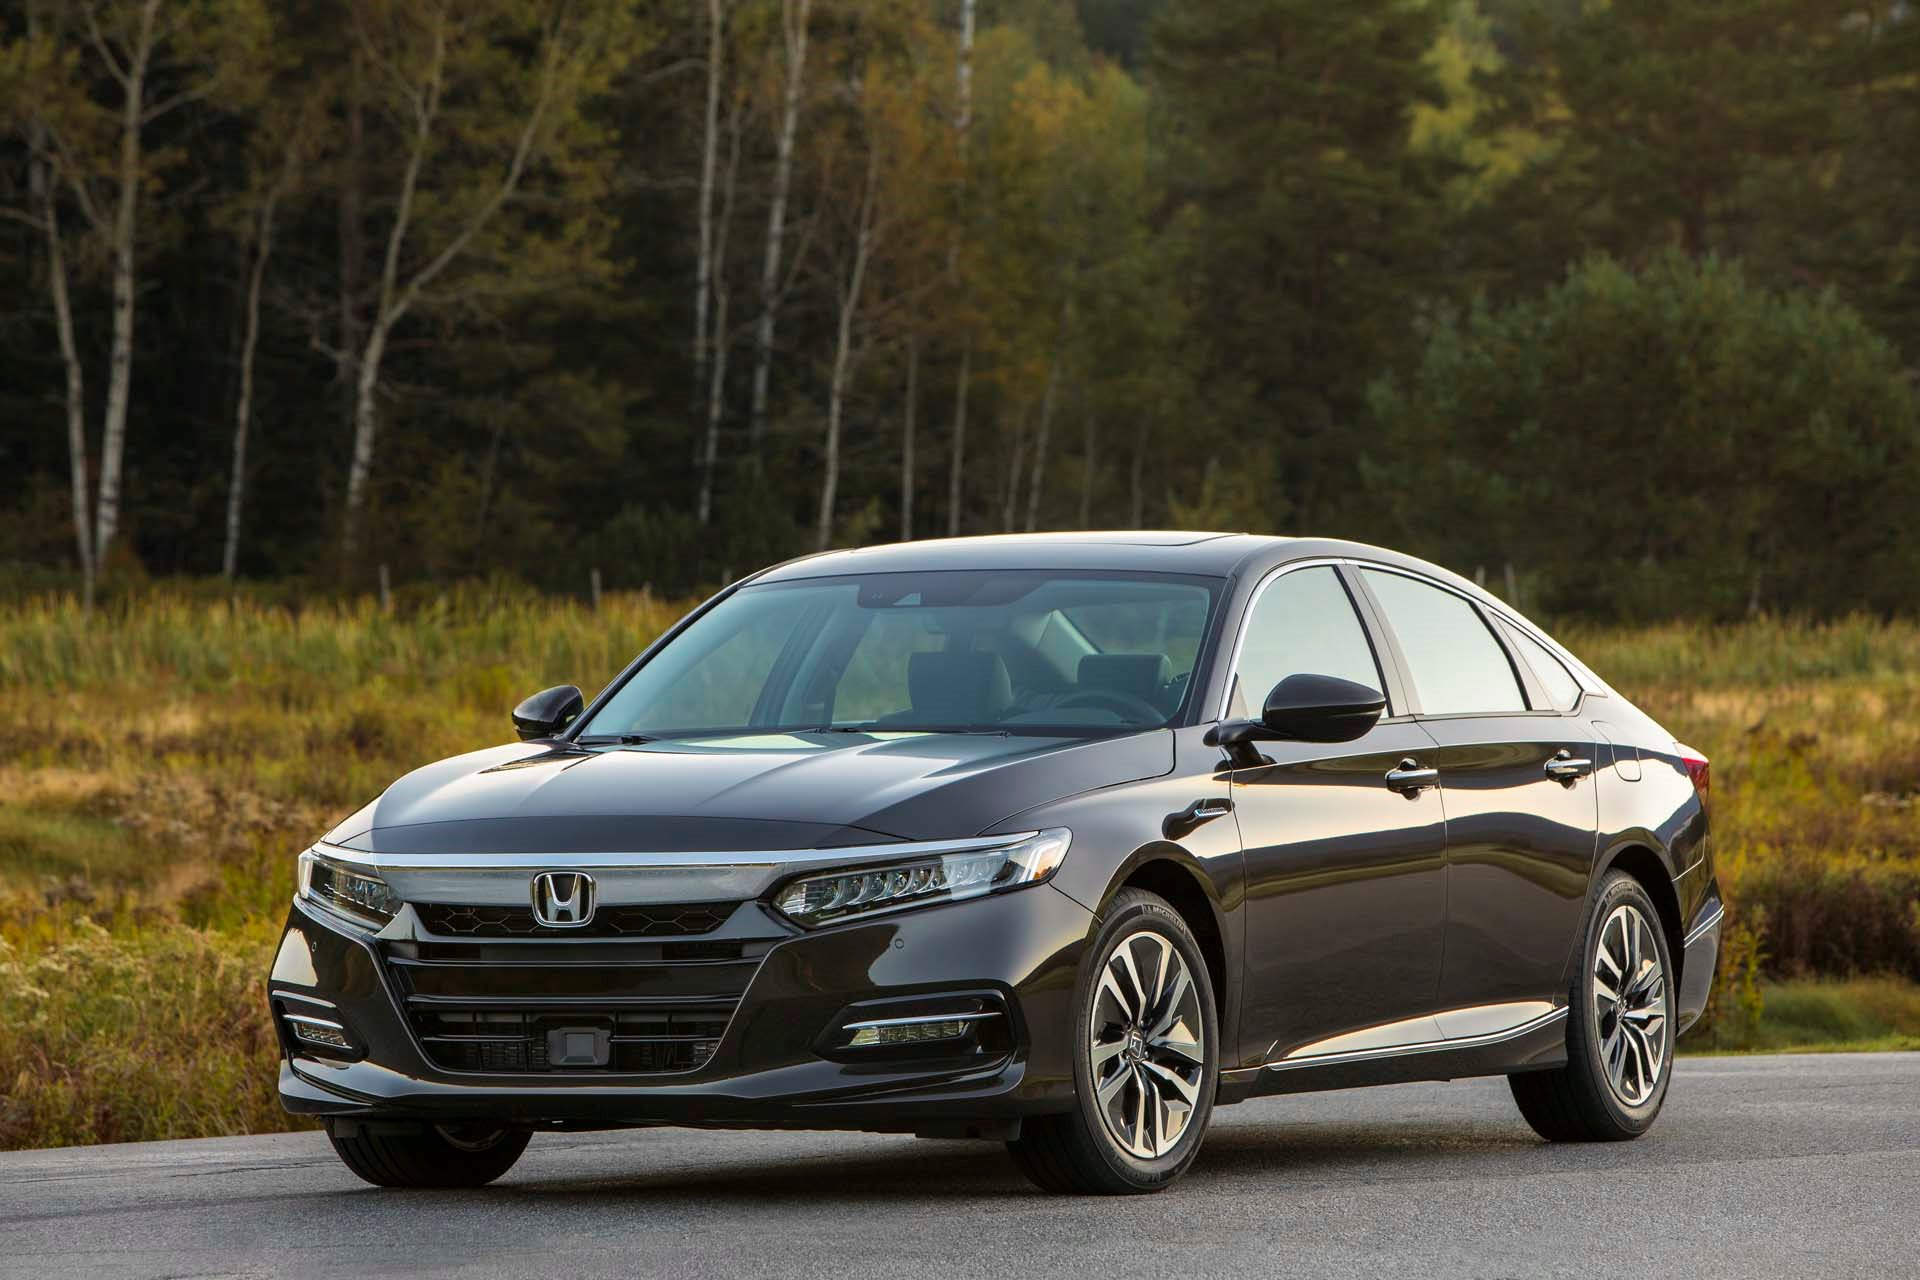 New 2019 Honda Accord EX-L Sedan for sale $30,120 at M and V Leasing in Brooklyn NY 11223 1